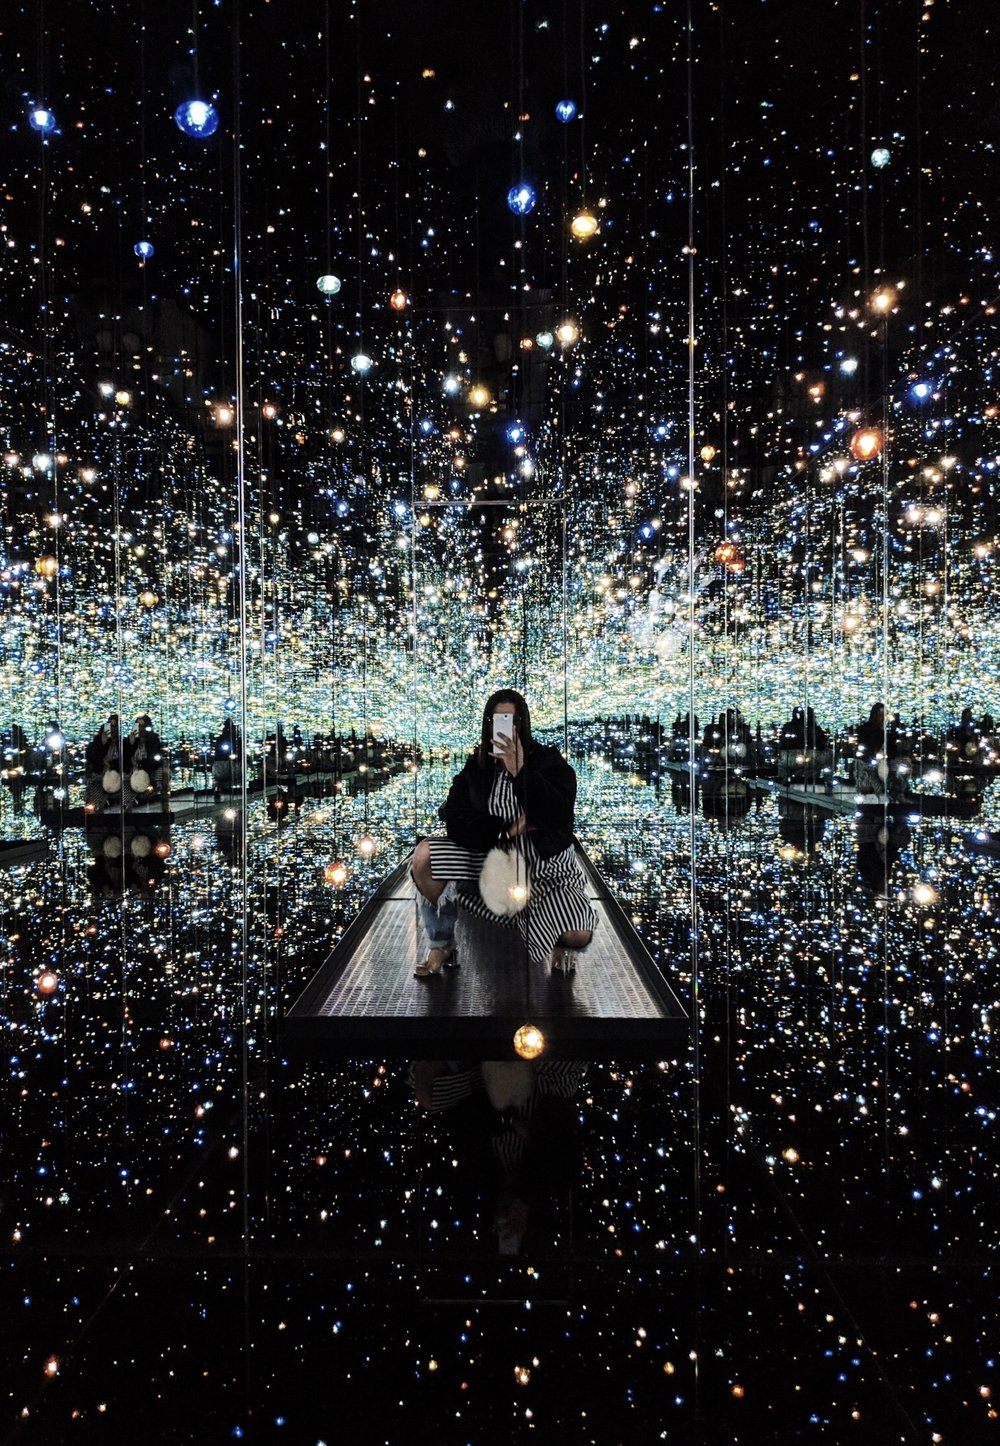 Yayoi Kusama at The Broad, Pixel 2 Camera Review